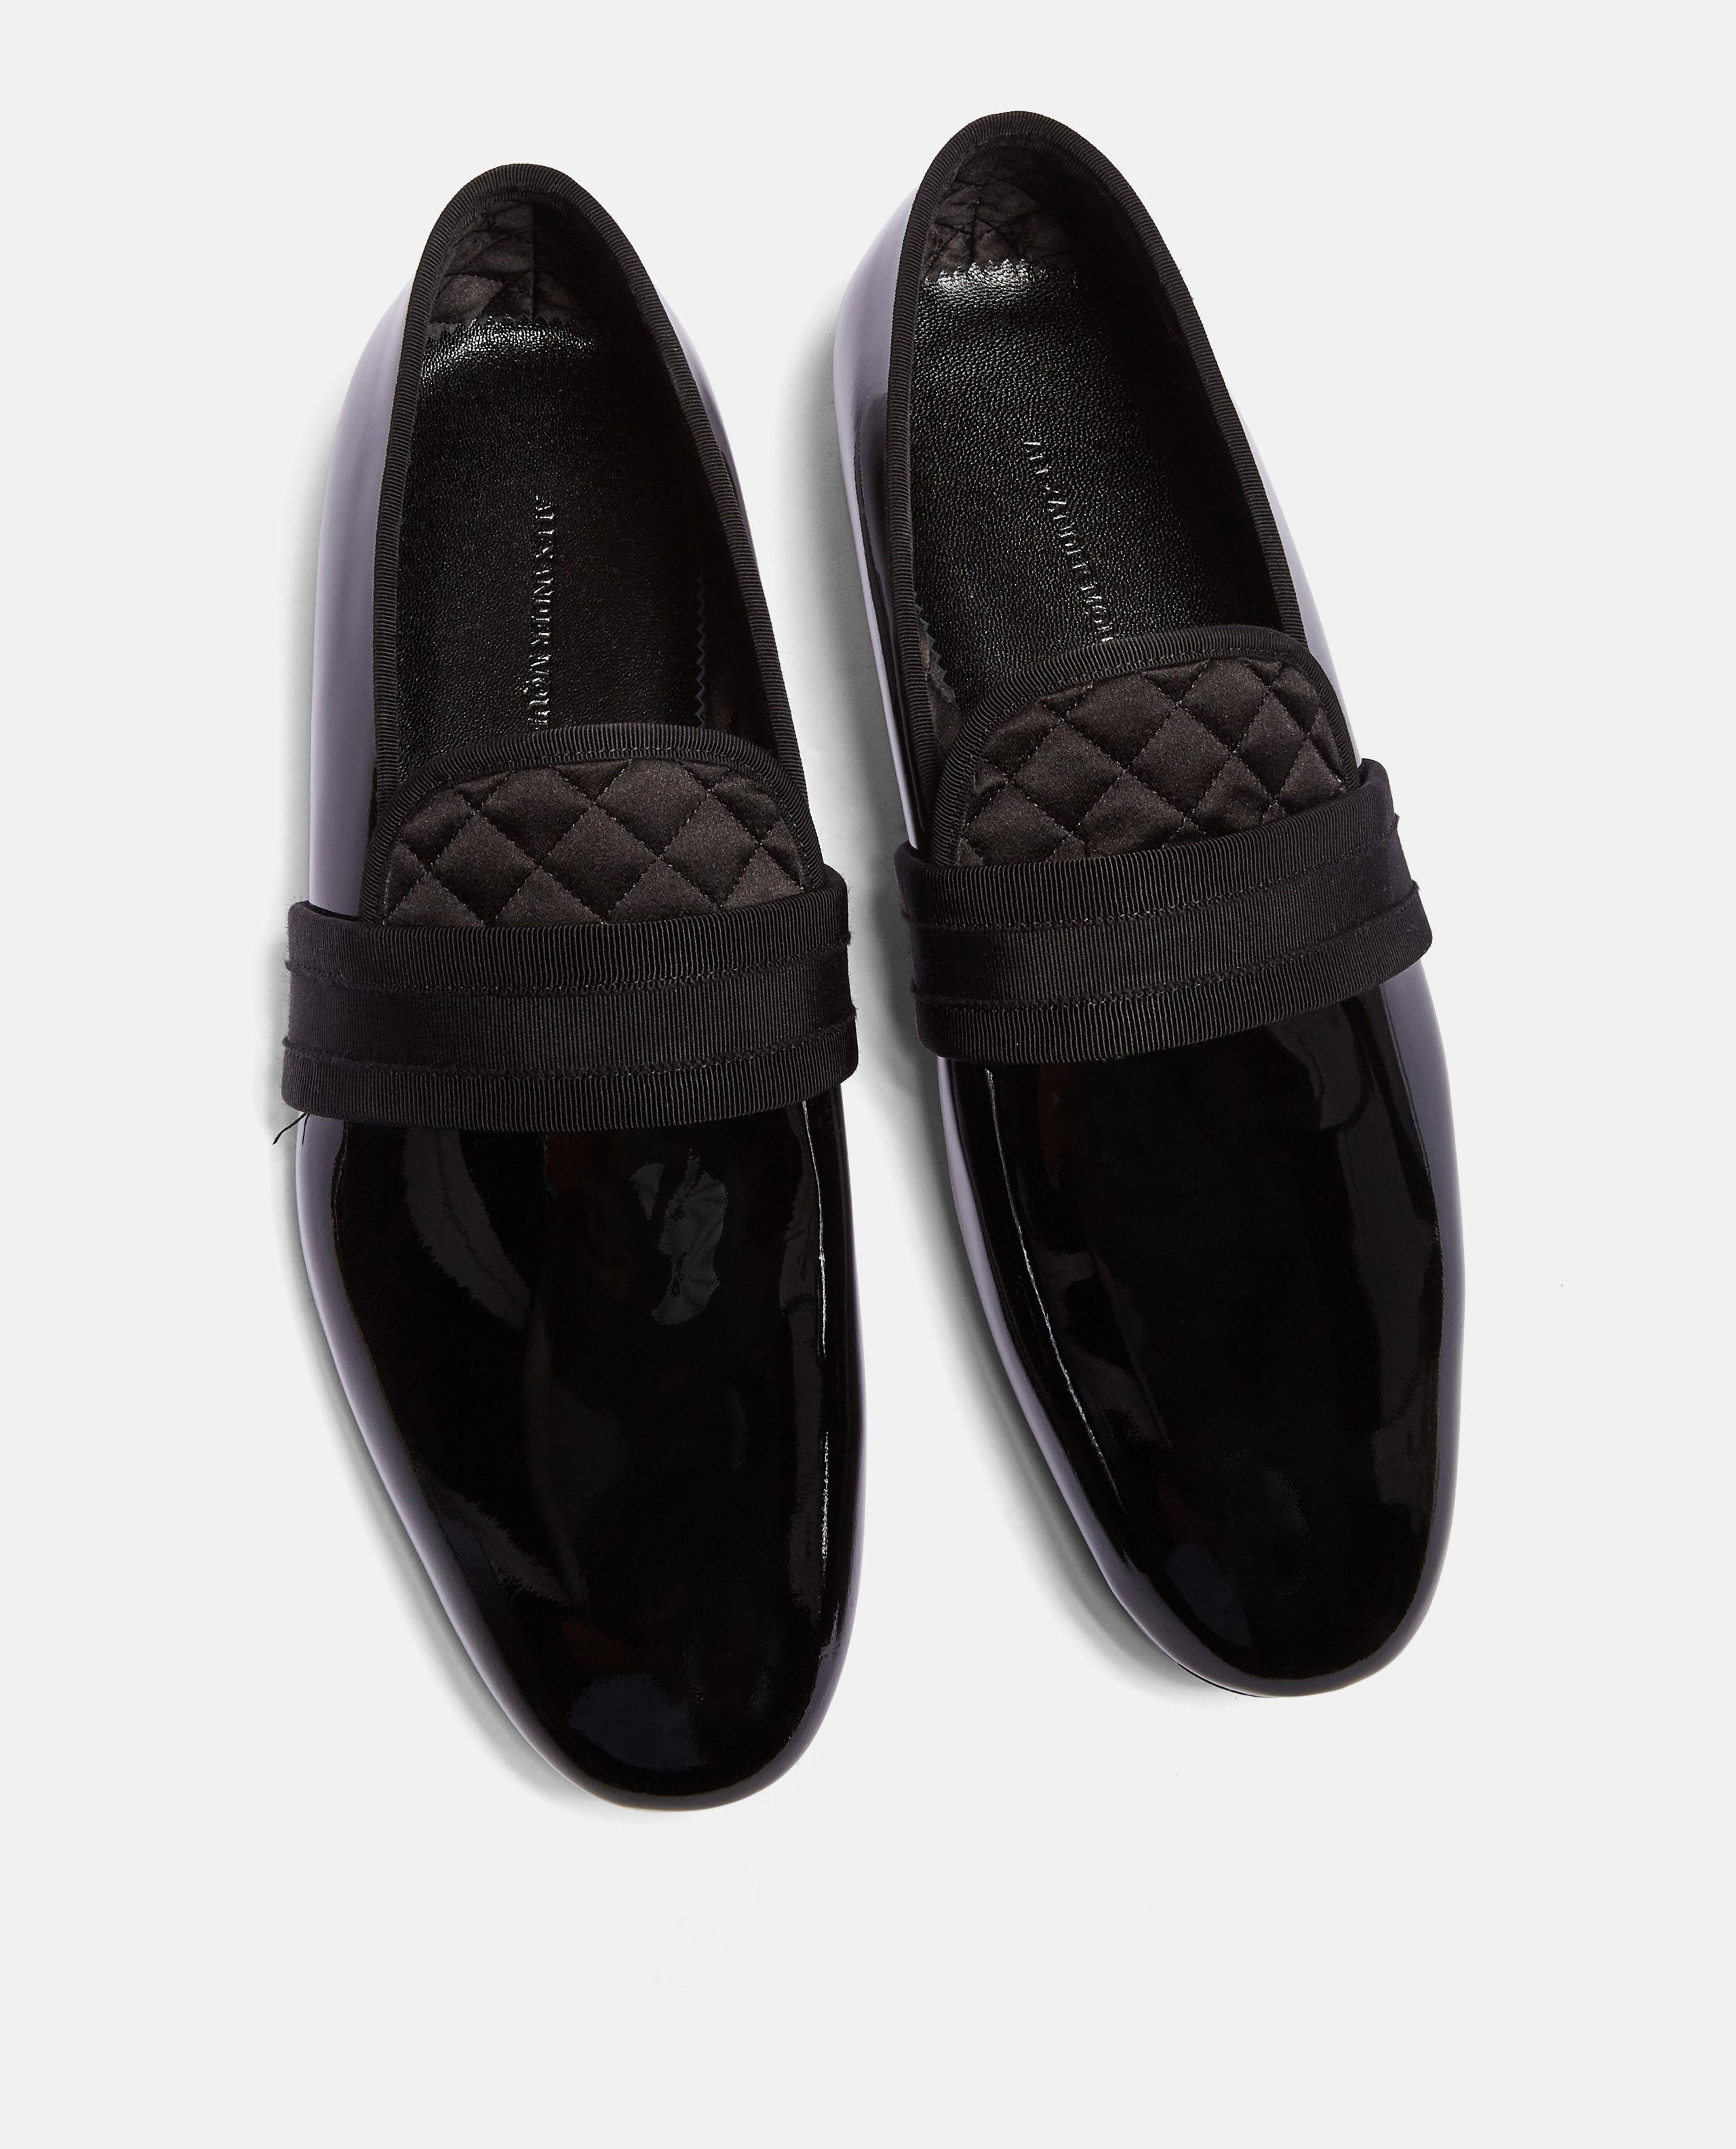 6dc040bb817 Alexander Mcqueen Patent Moccasins in Black for Men - Lyst